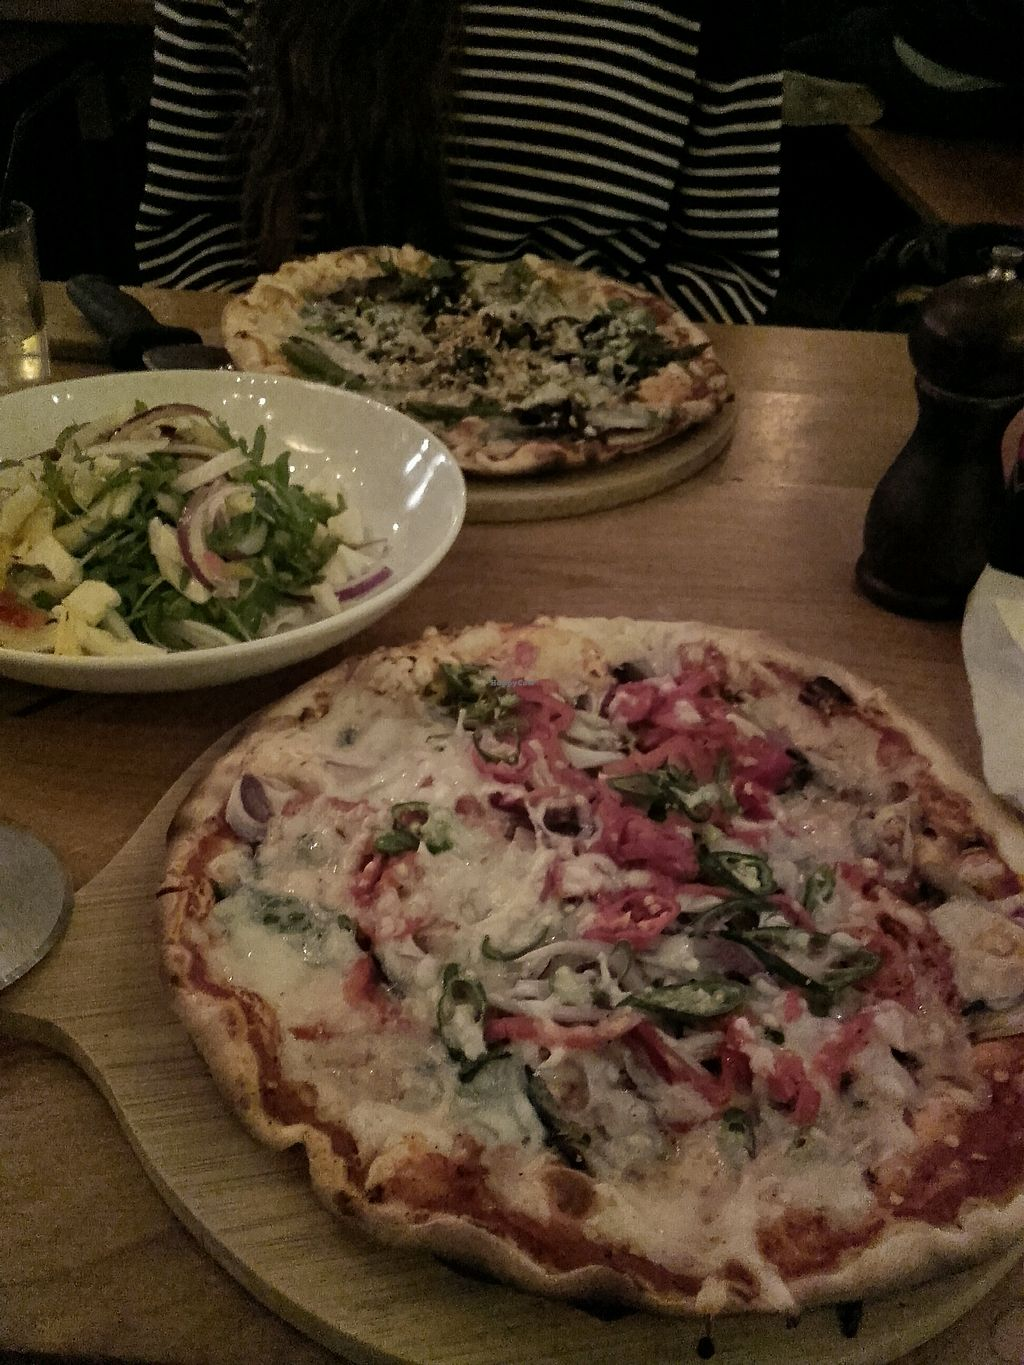 """Photo of The Stable  by <a href=""""/members/profile/MarkSwift"""">MarkSwift</a> <br/>Vegan pizza and salad are delicious <br/> November 8, 2017  - <a href='/contact/abuse/image/87612/323398'>Report</a>"""